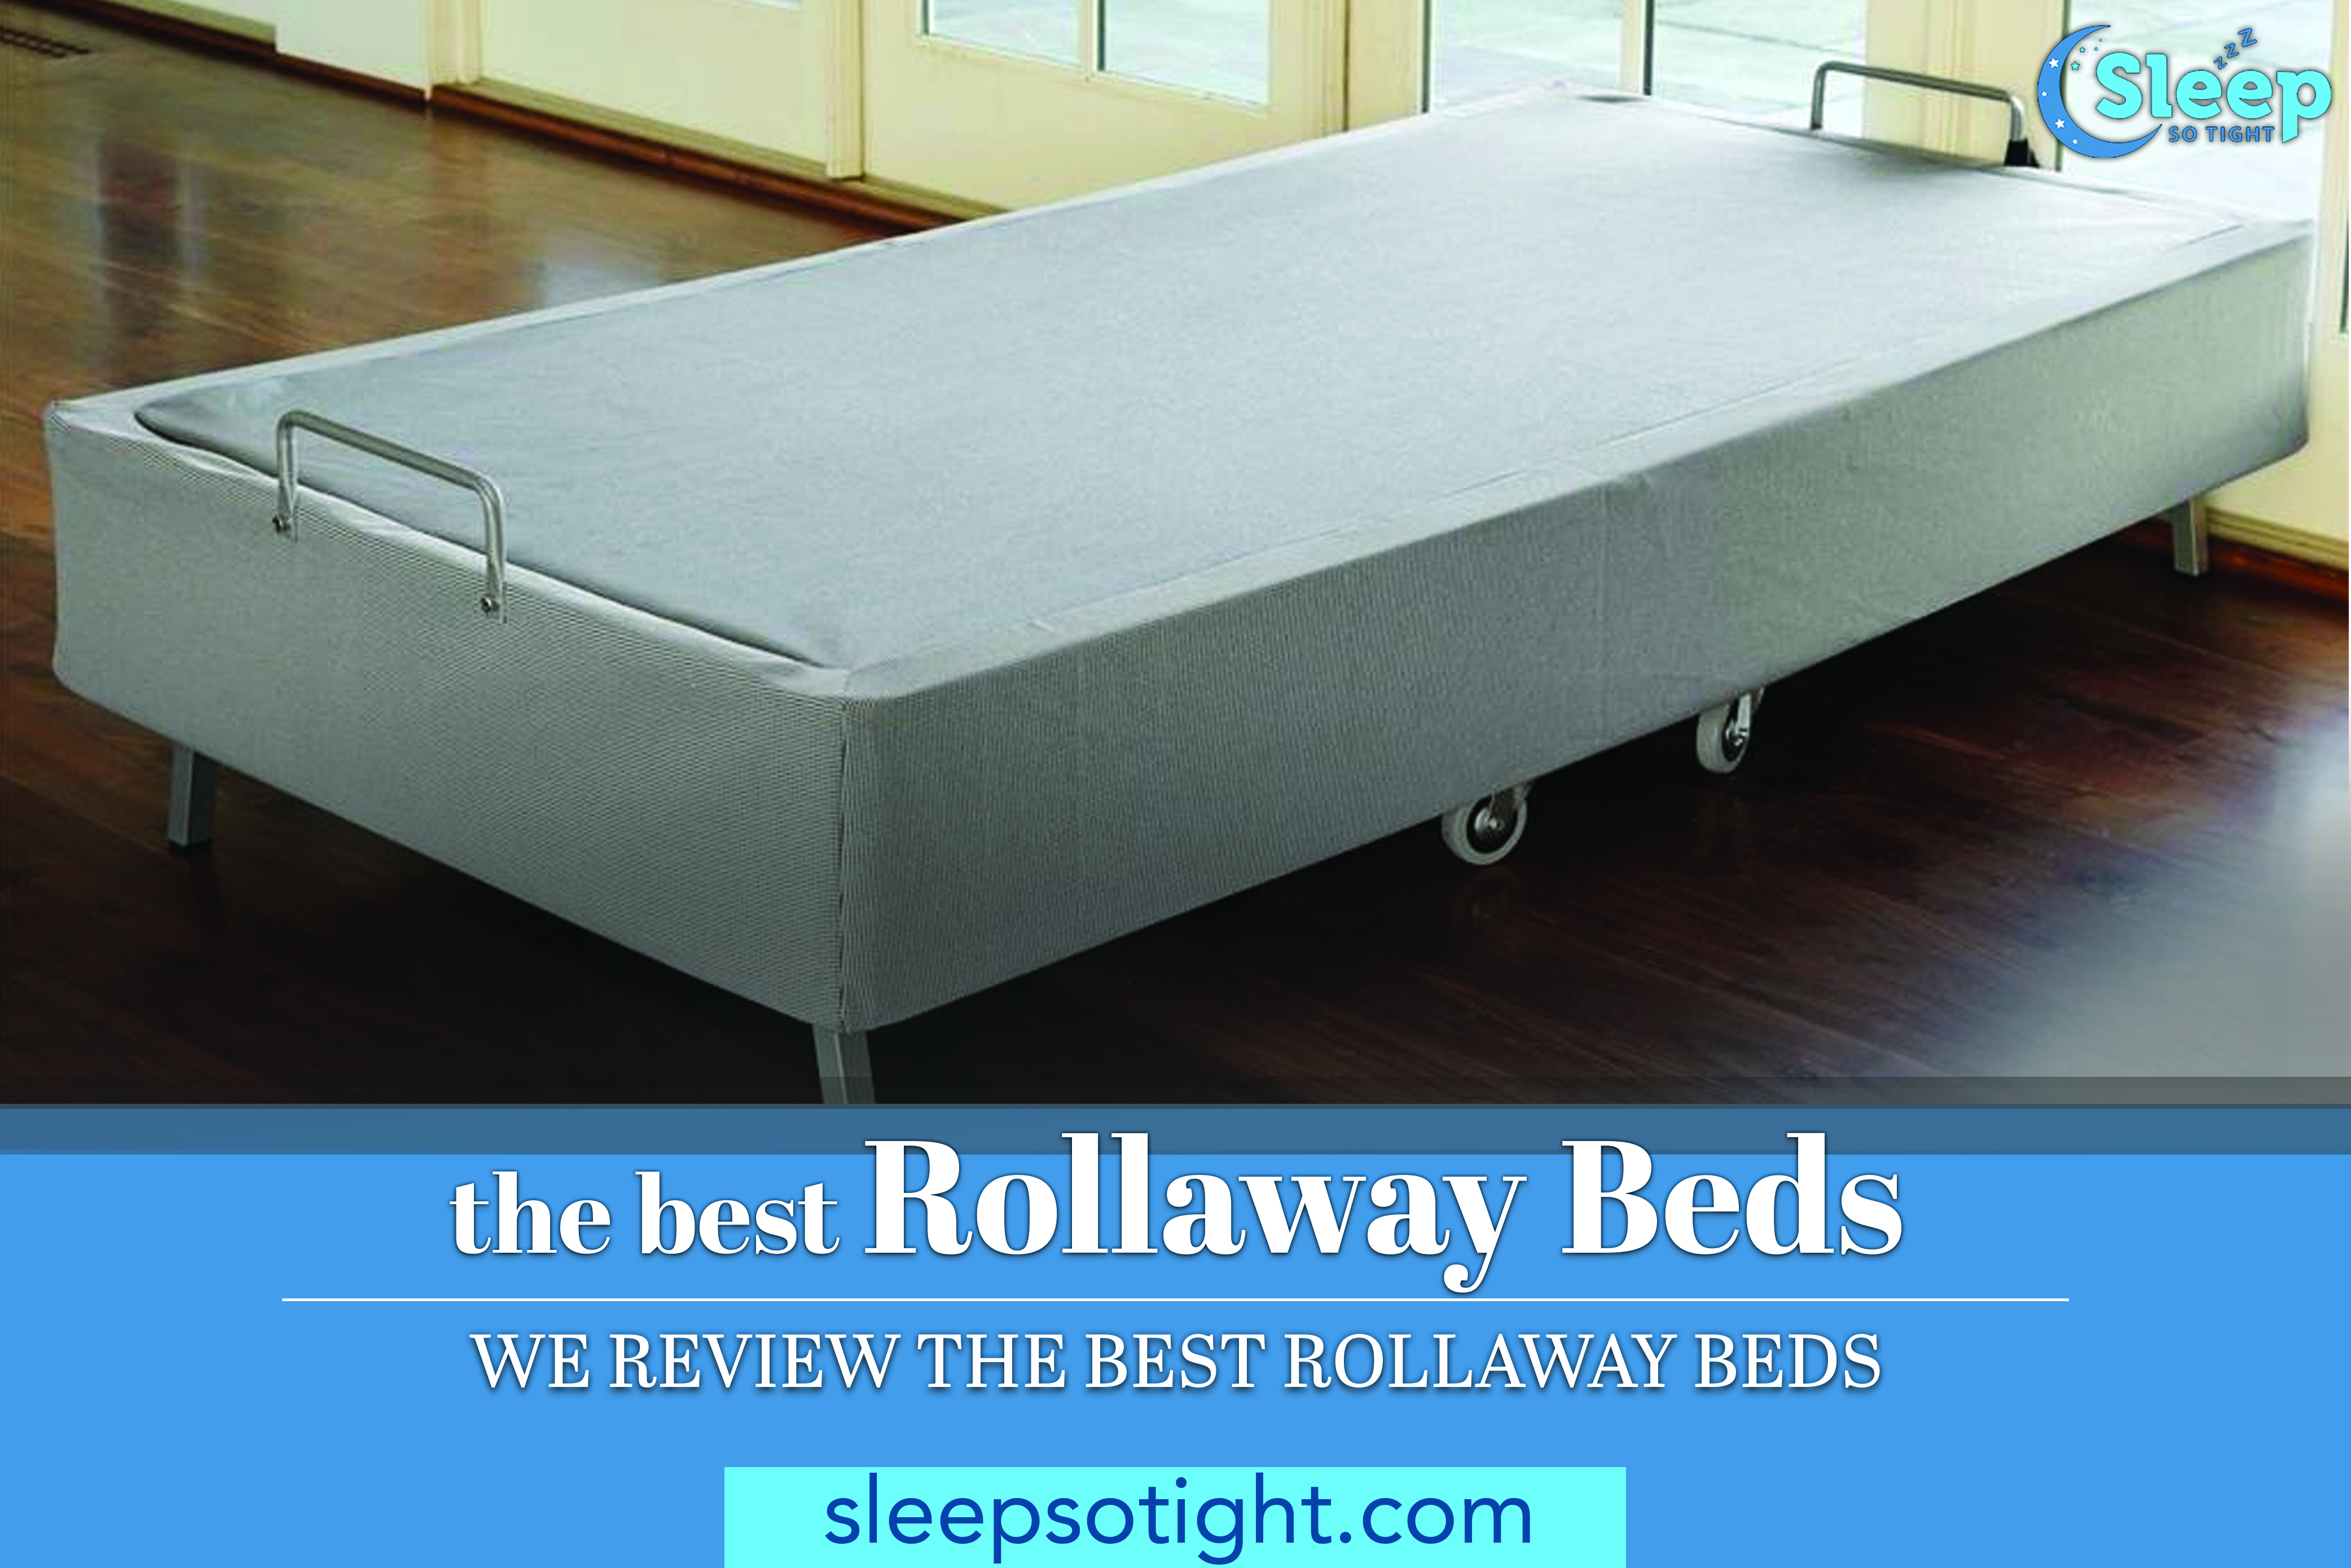 The 7 Best Rollaway Beds Of 2020 Sleep So Tight